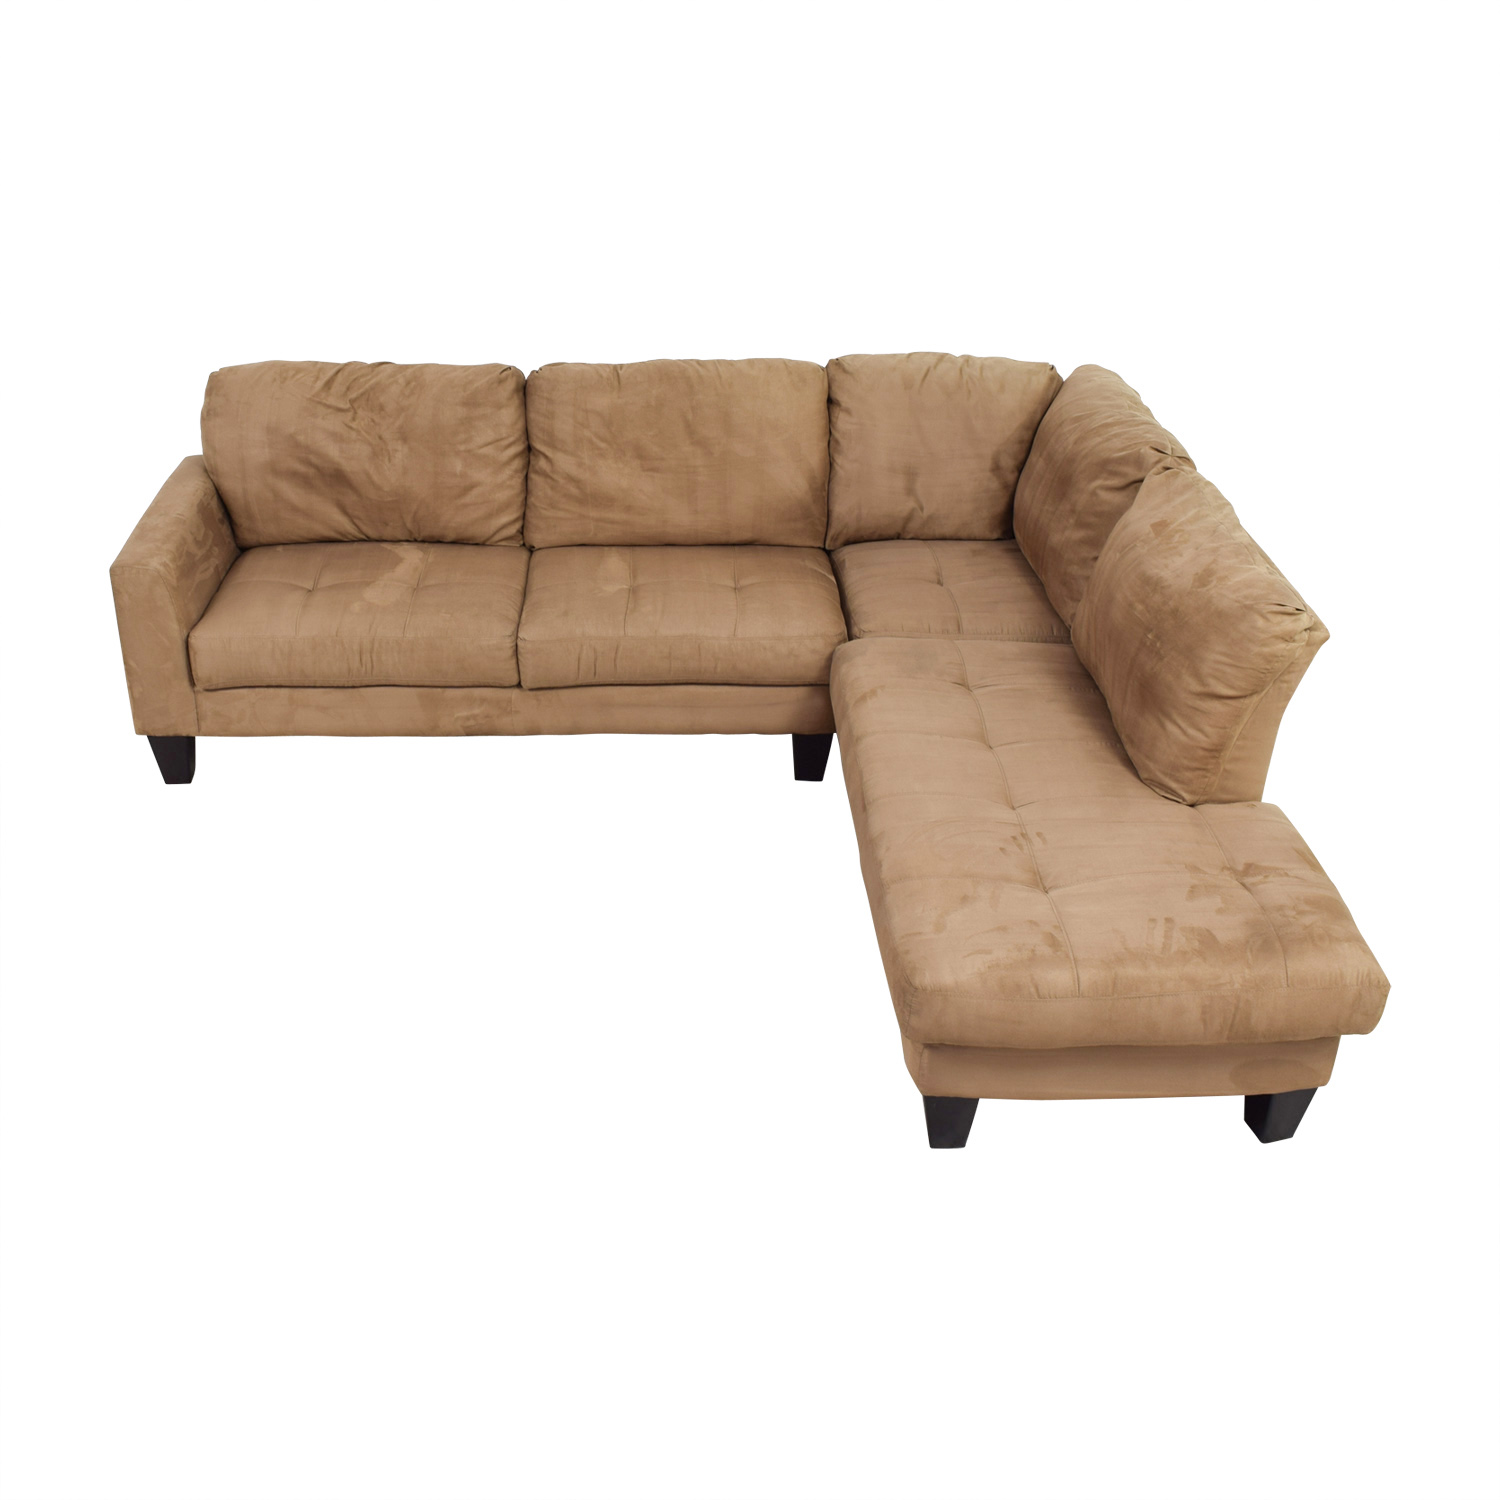 Poundex Poundex Beige L-Shaped Sectional coupon